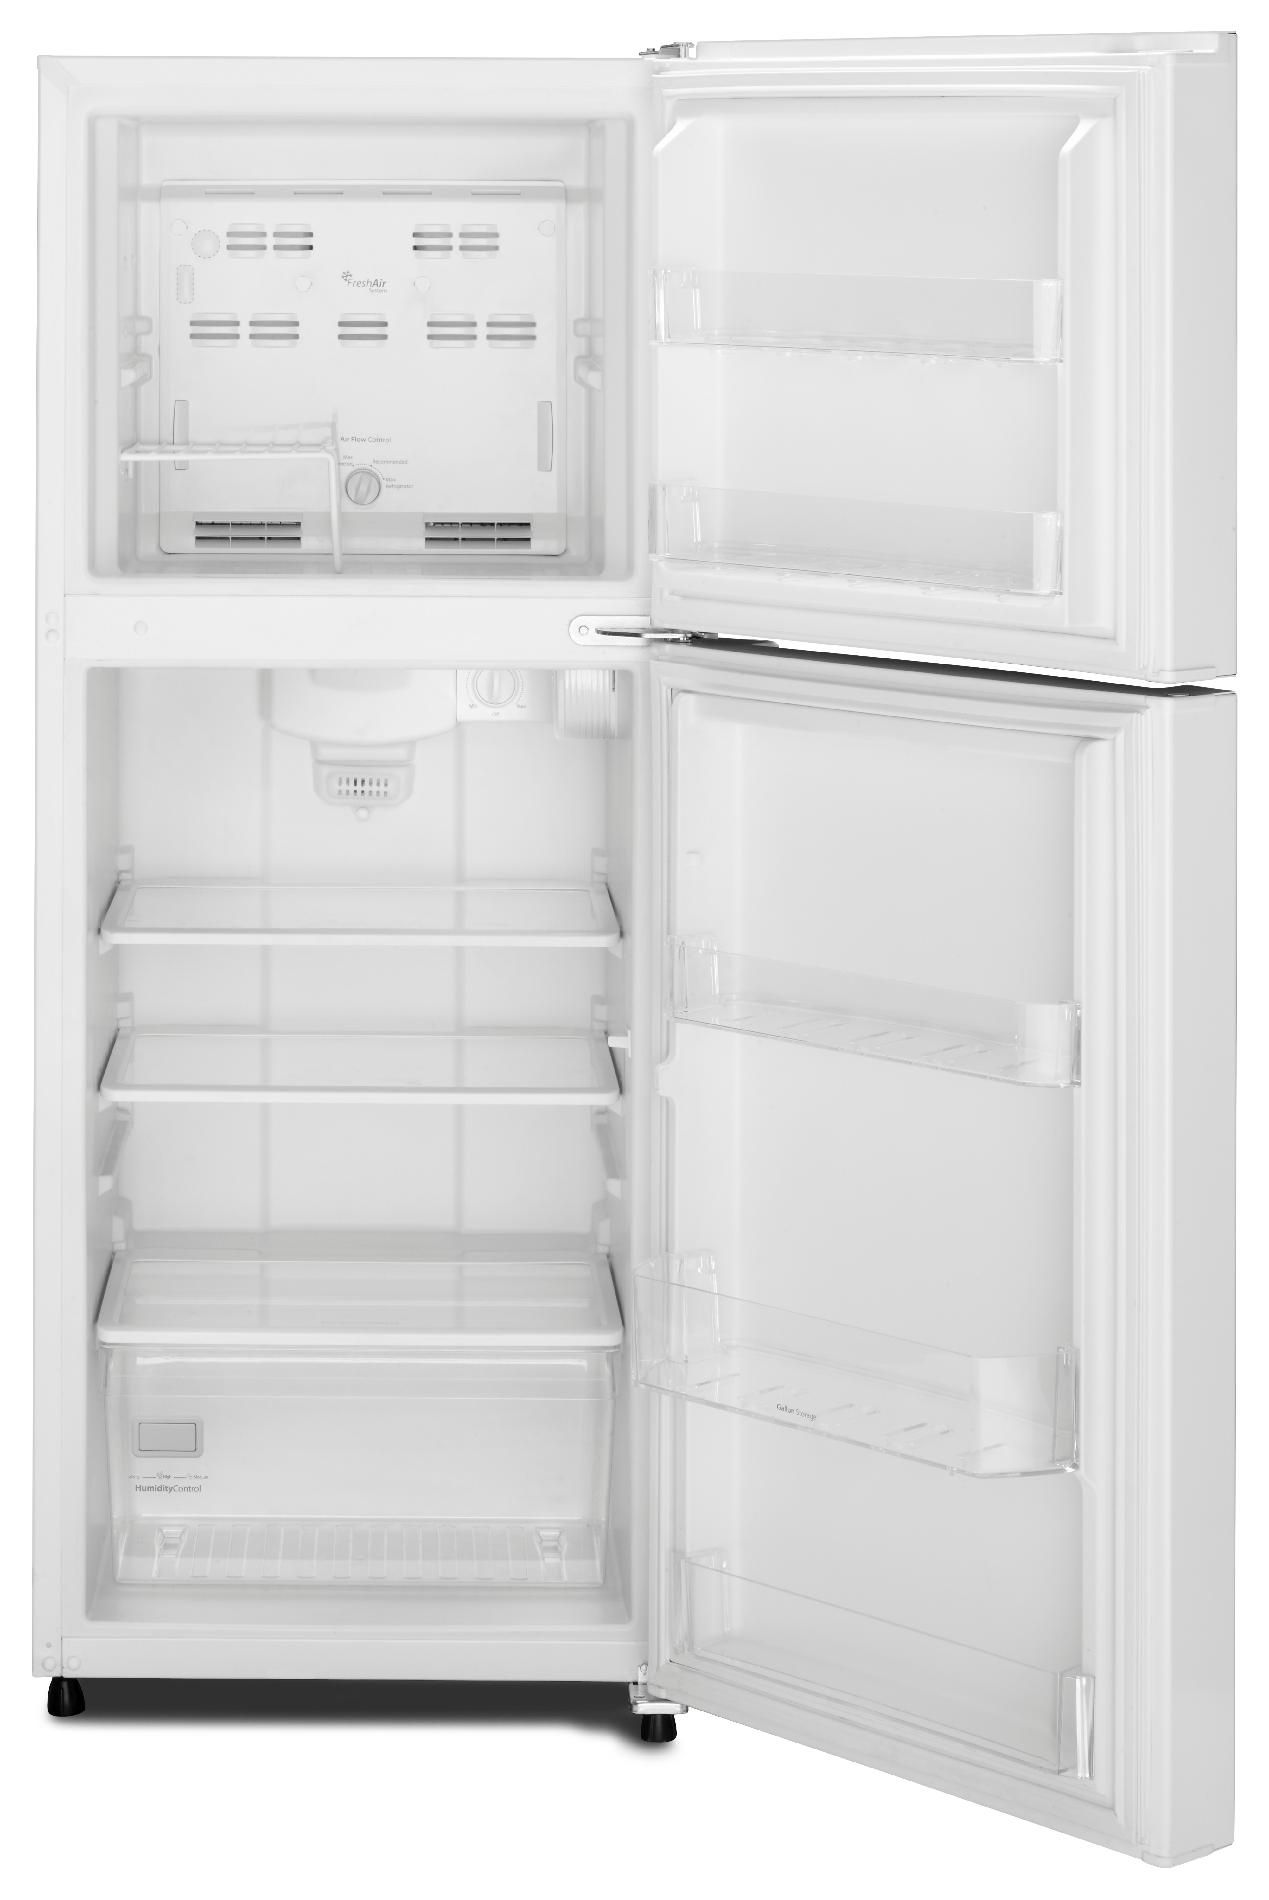 Whirlpool 10.7 cu. ft. Top-Freezer Refrigerator w/ Gallon Door Bin - White